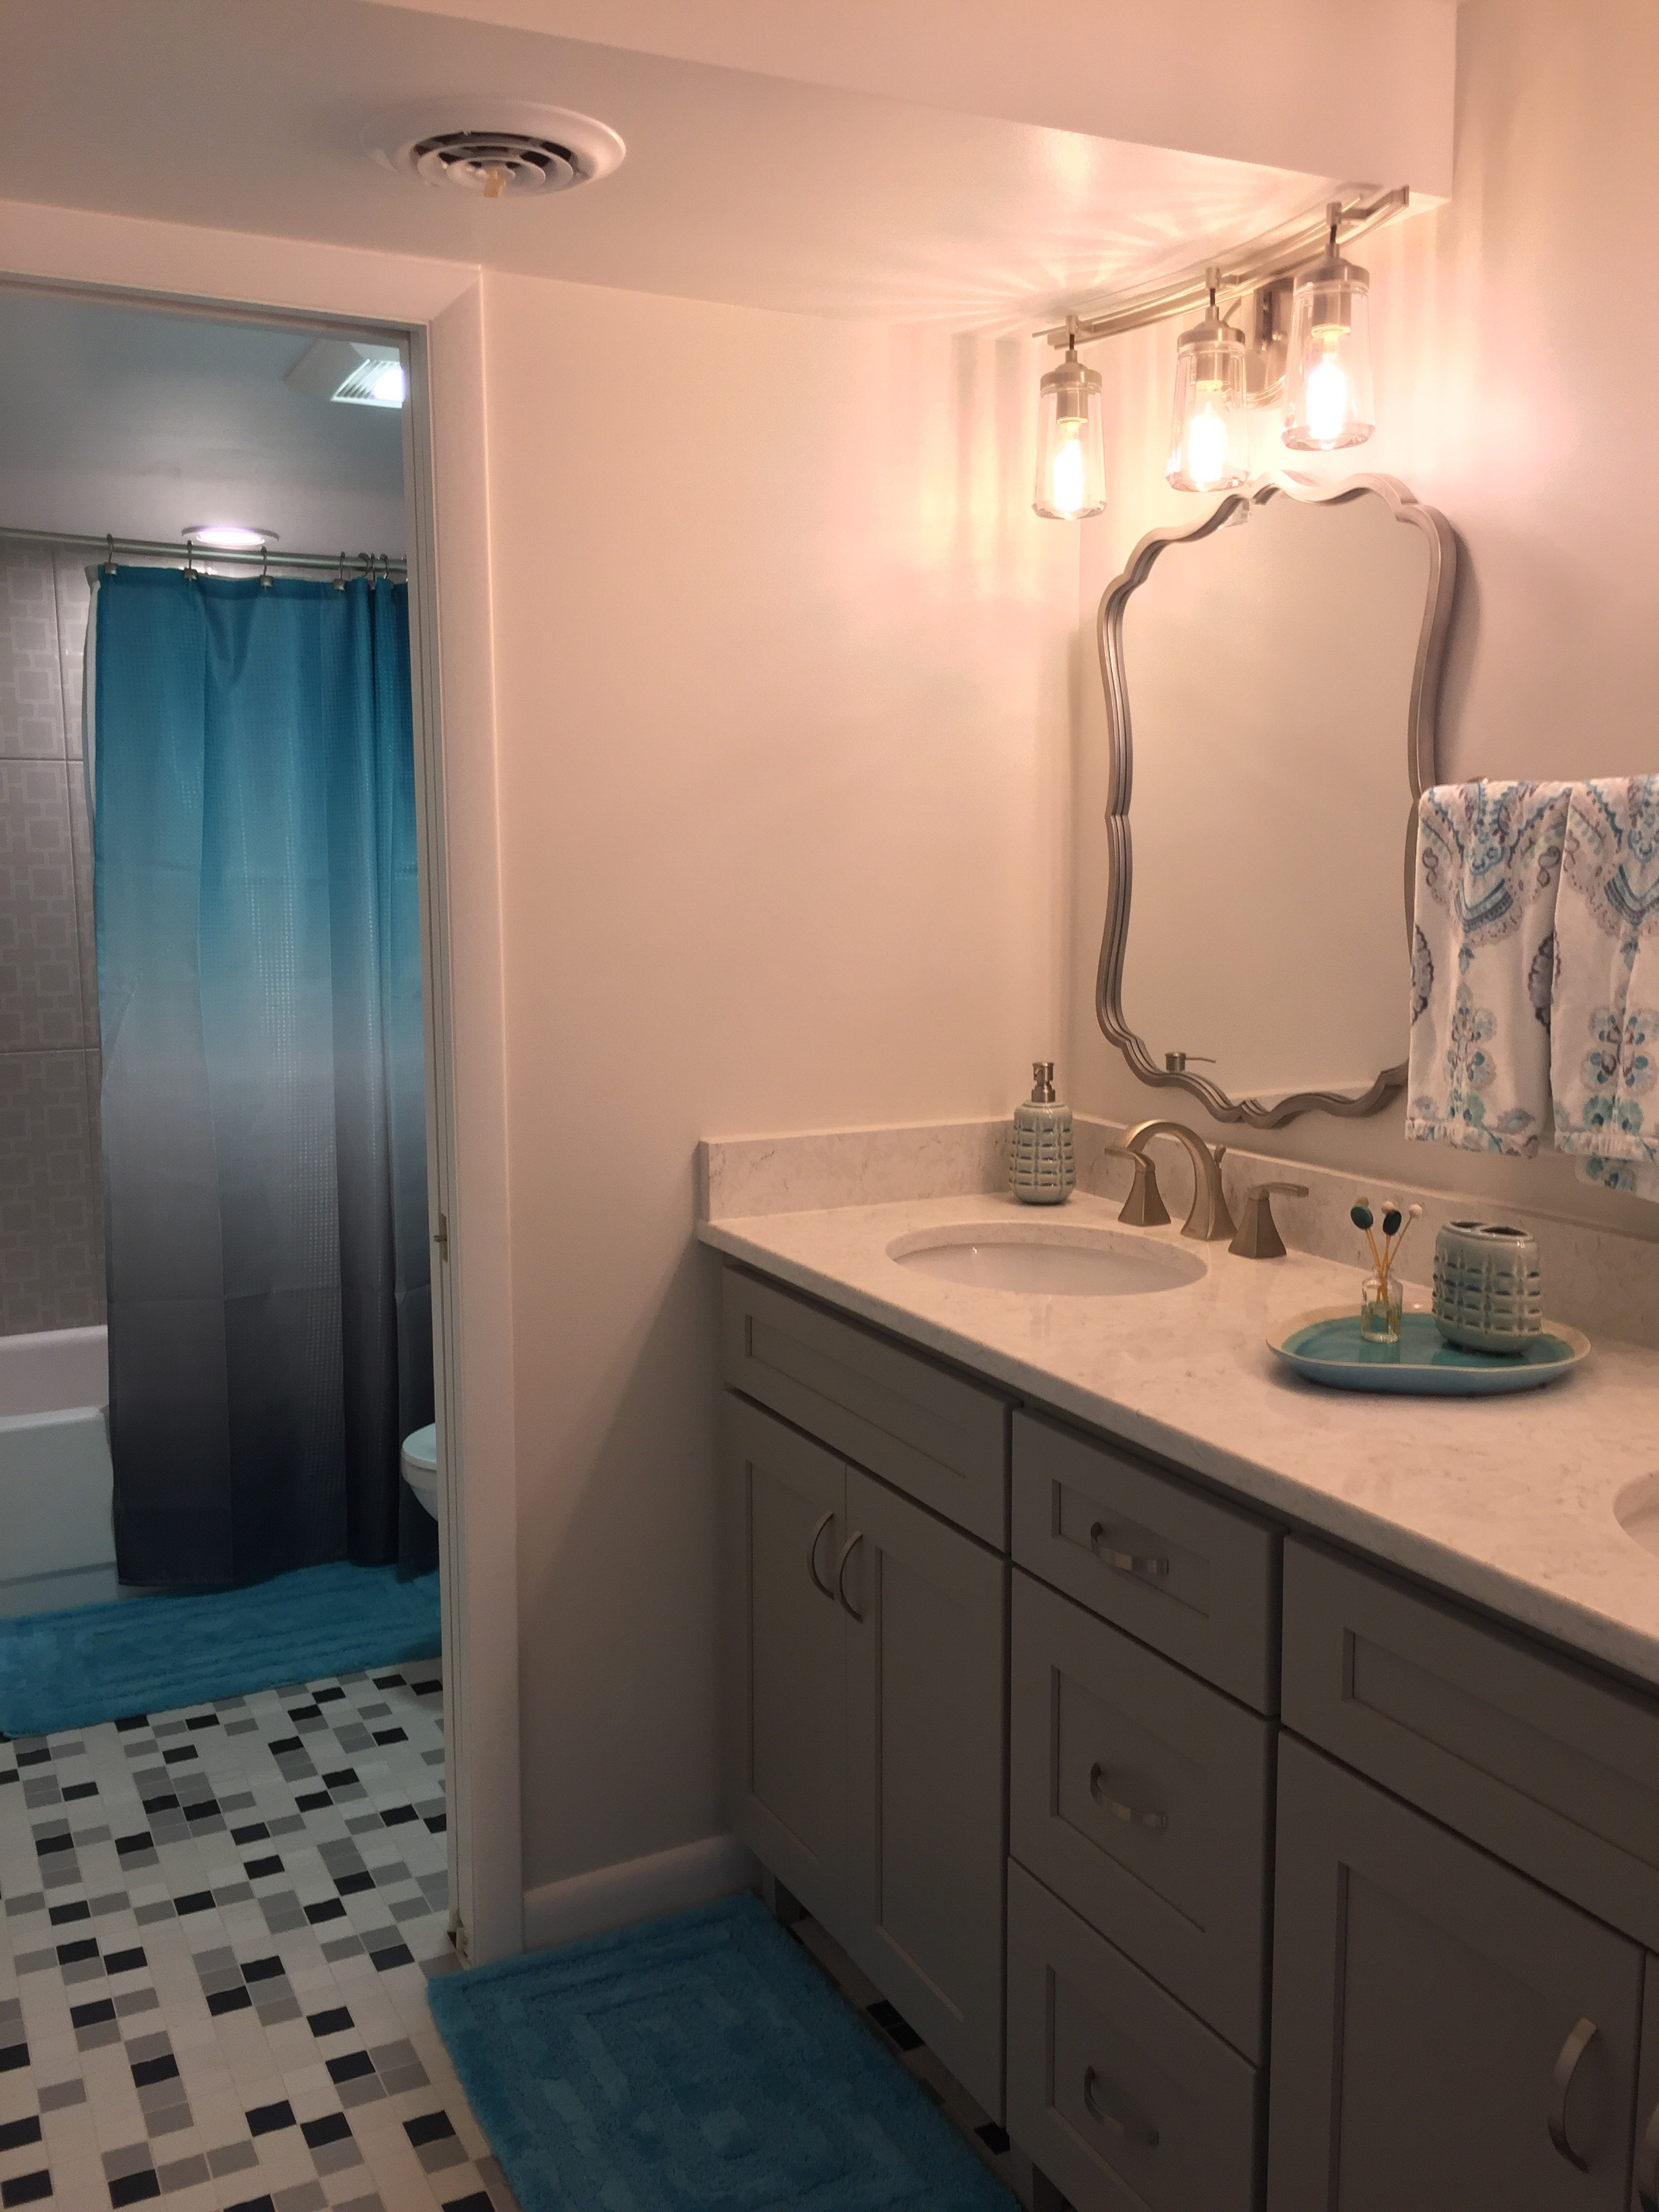 After, a new wall and door separate the vanities from the toilet/tub area.